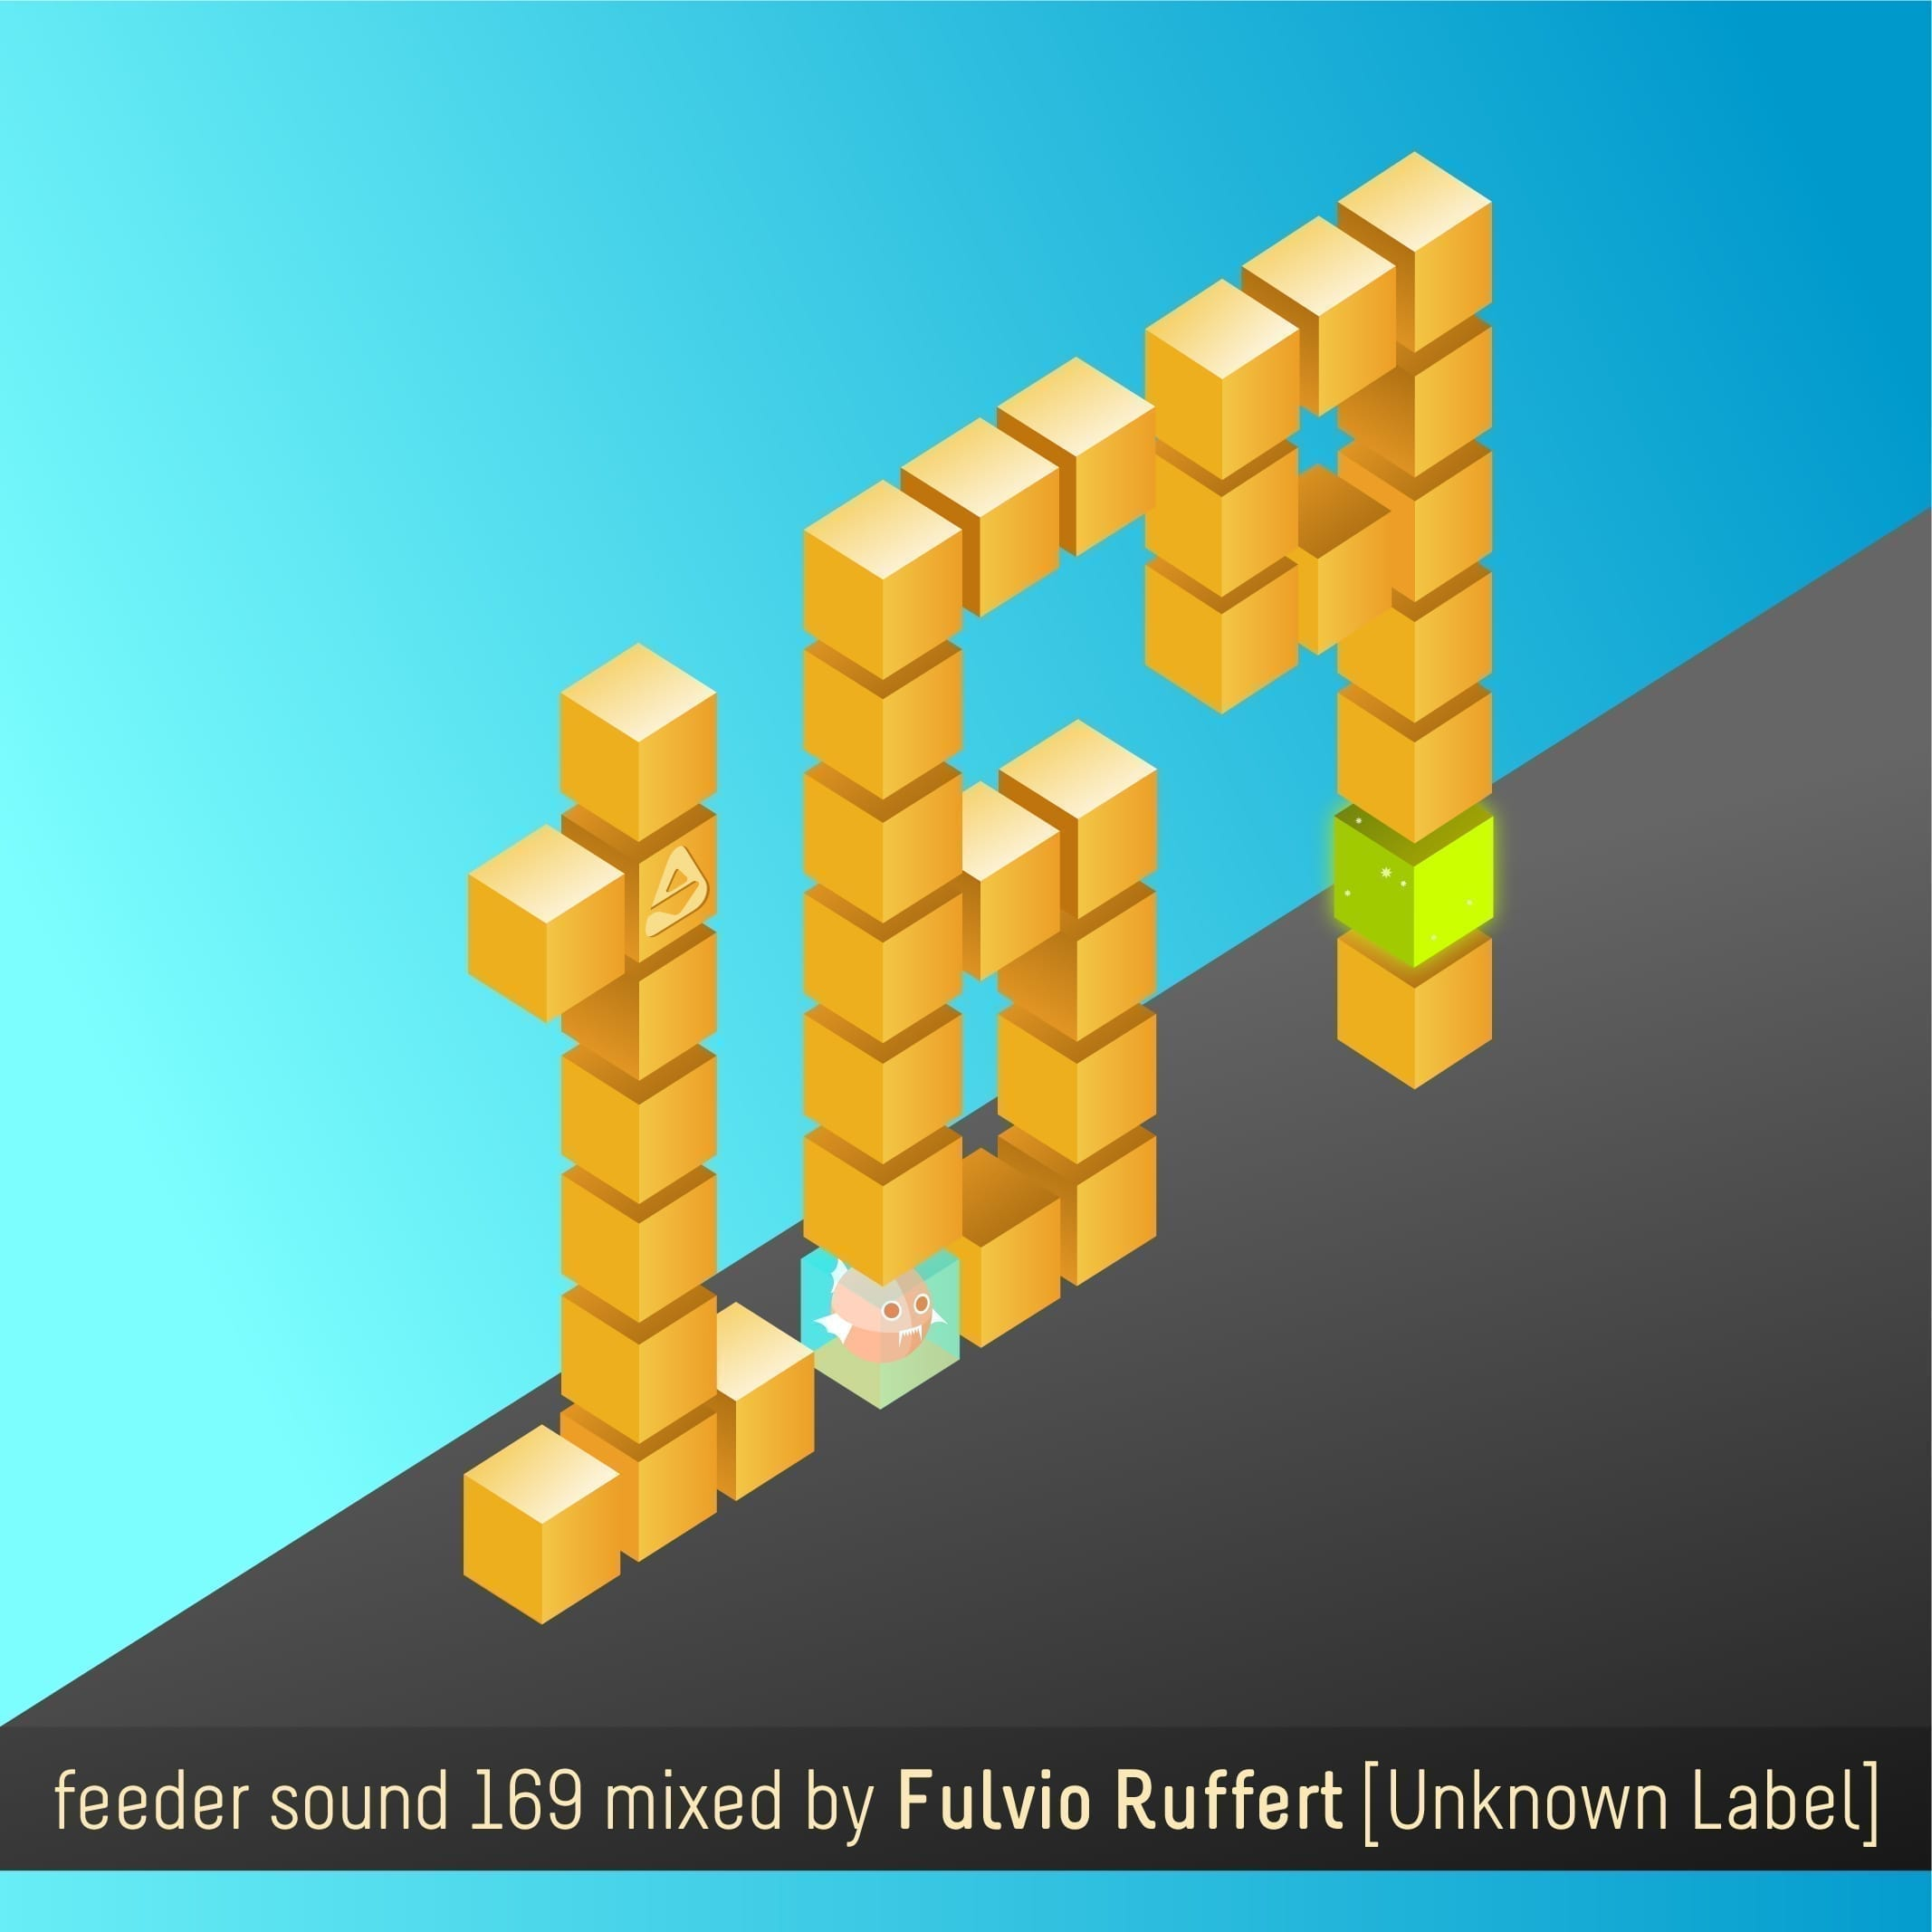 feeder sound 169 mixed by Fulvio Ruffert [Unknown Label]